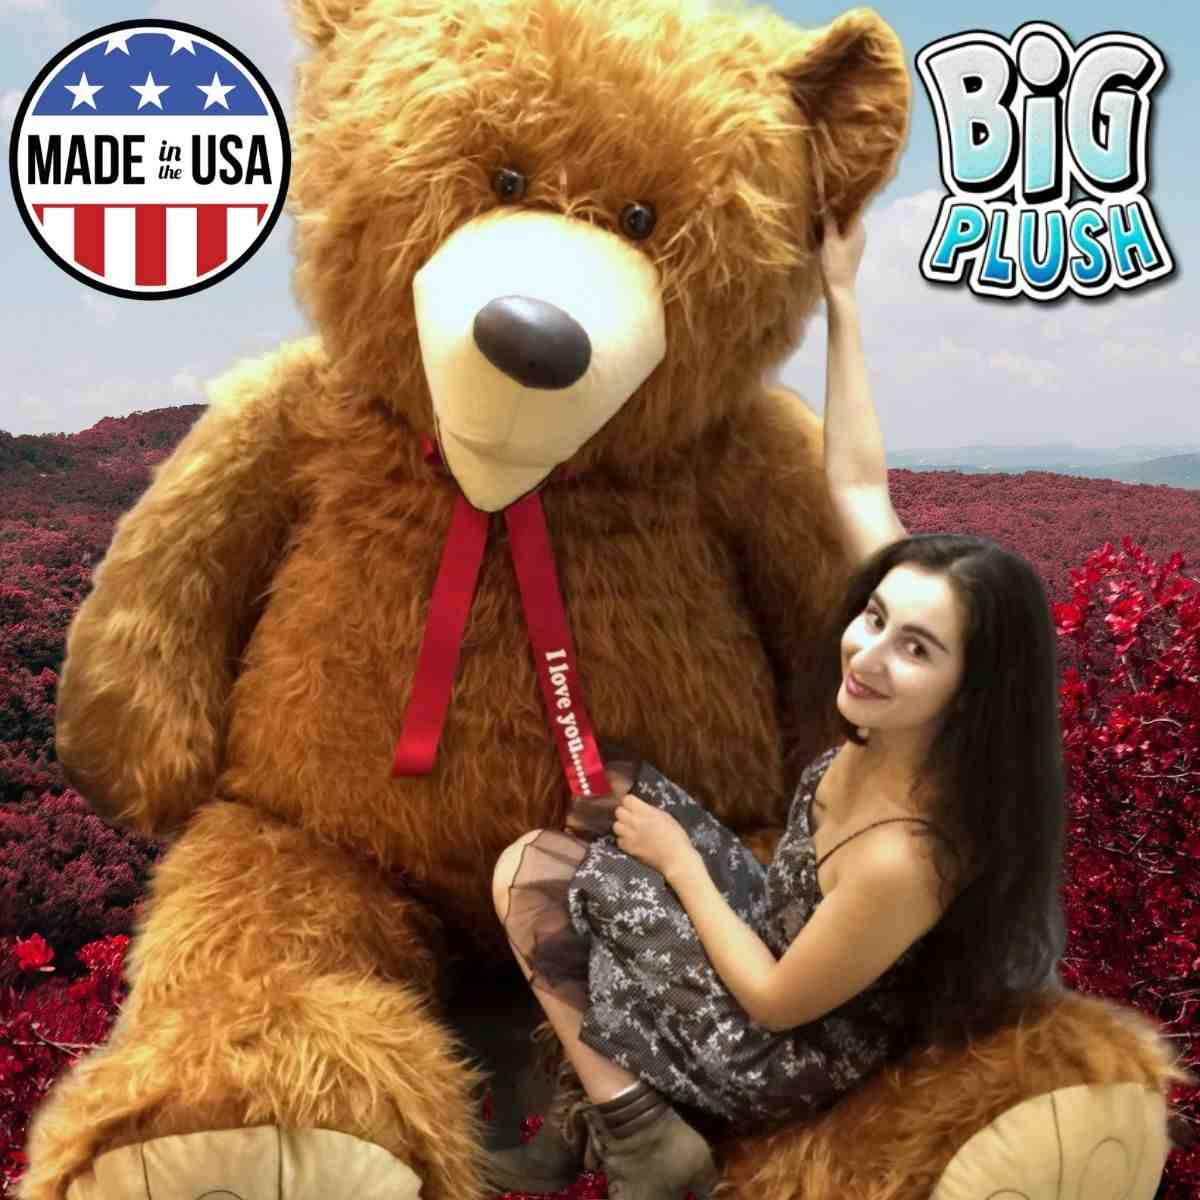 Choose from hundreds of the largest and softest giant teddy bears for Valentines Day at Big Plush